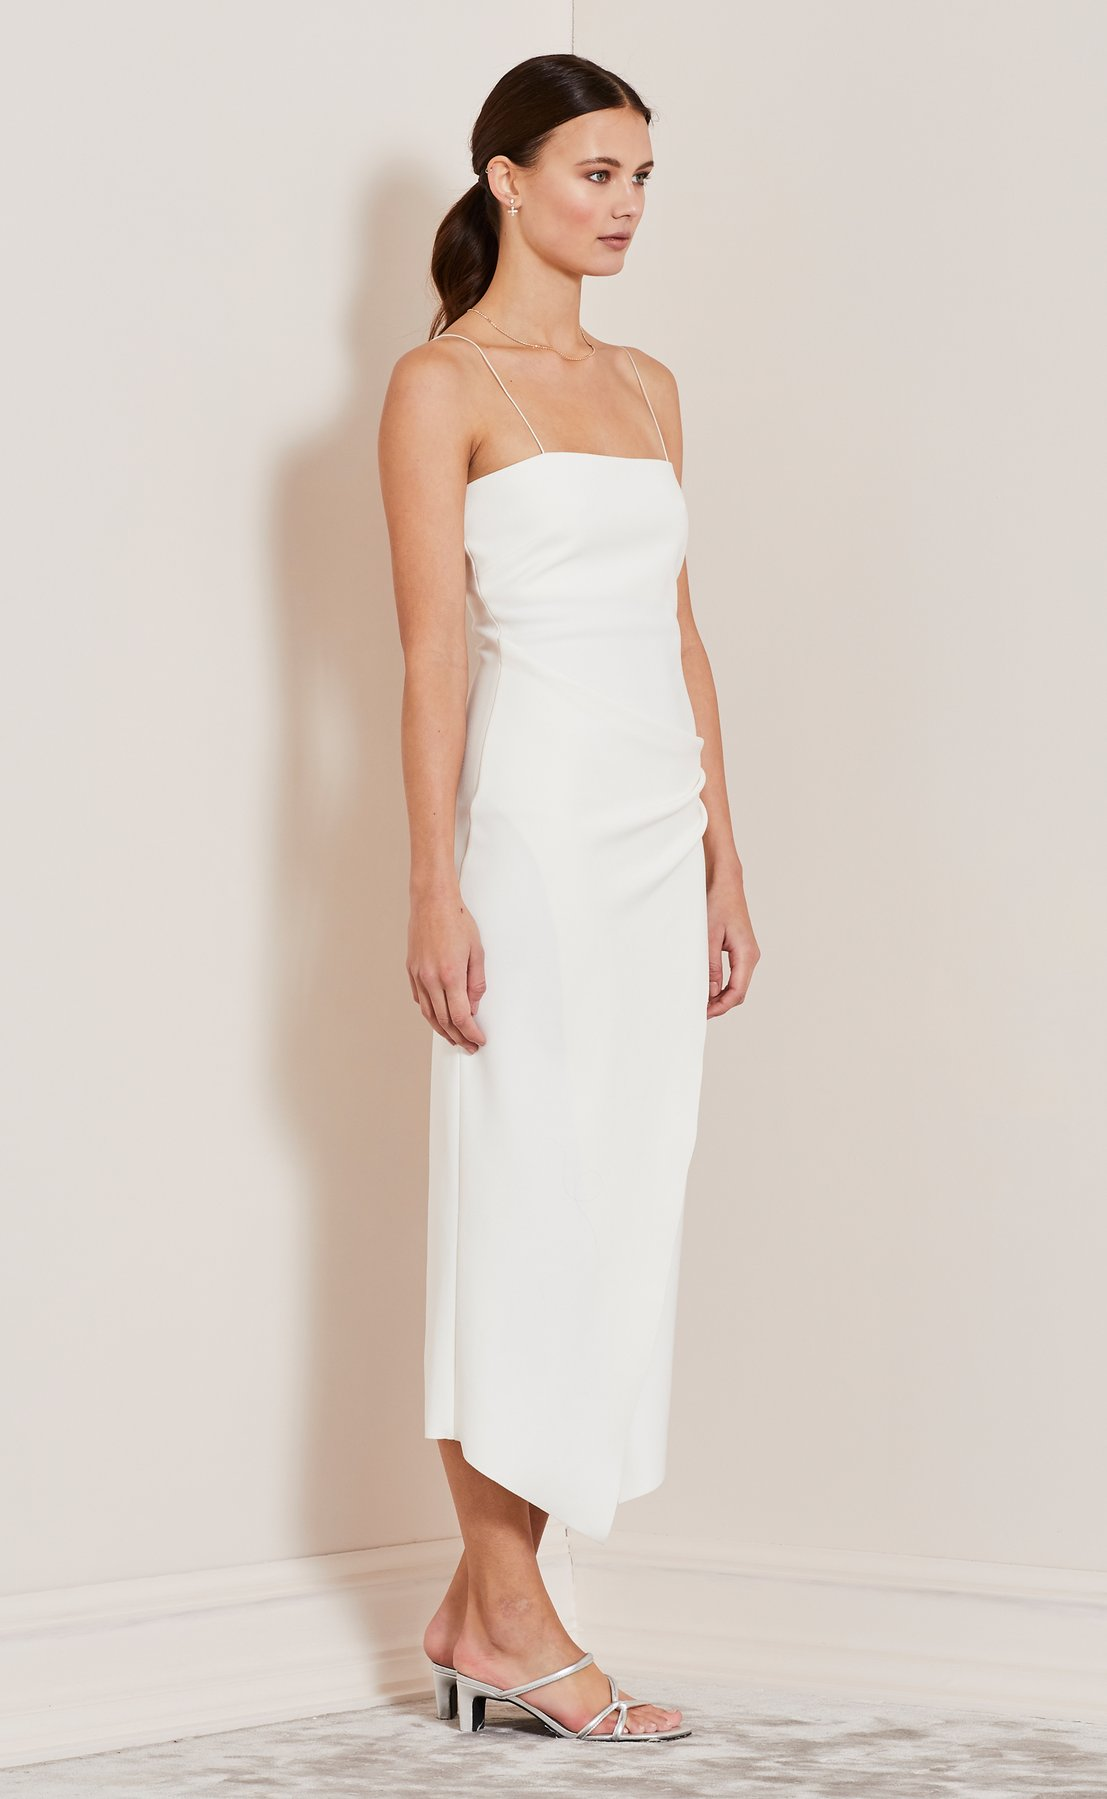 BEC & BRIDGE Be Mine Fixed Wrap Dress | 12 Bridal Gowns You Can Buy For Under $1,000 | LOVE FIND CO. Bridal Dress Directory